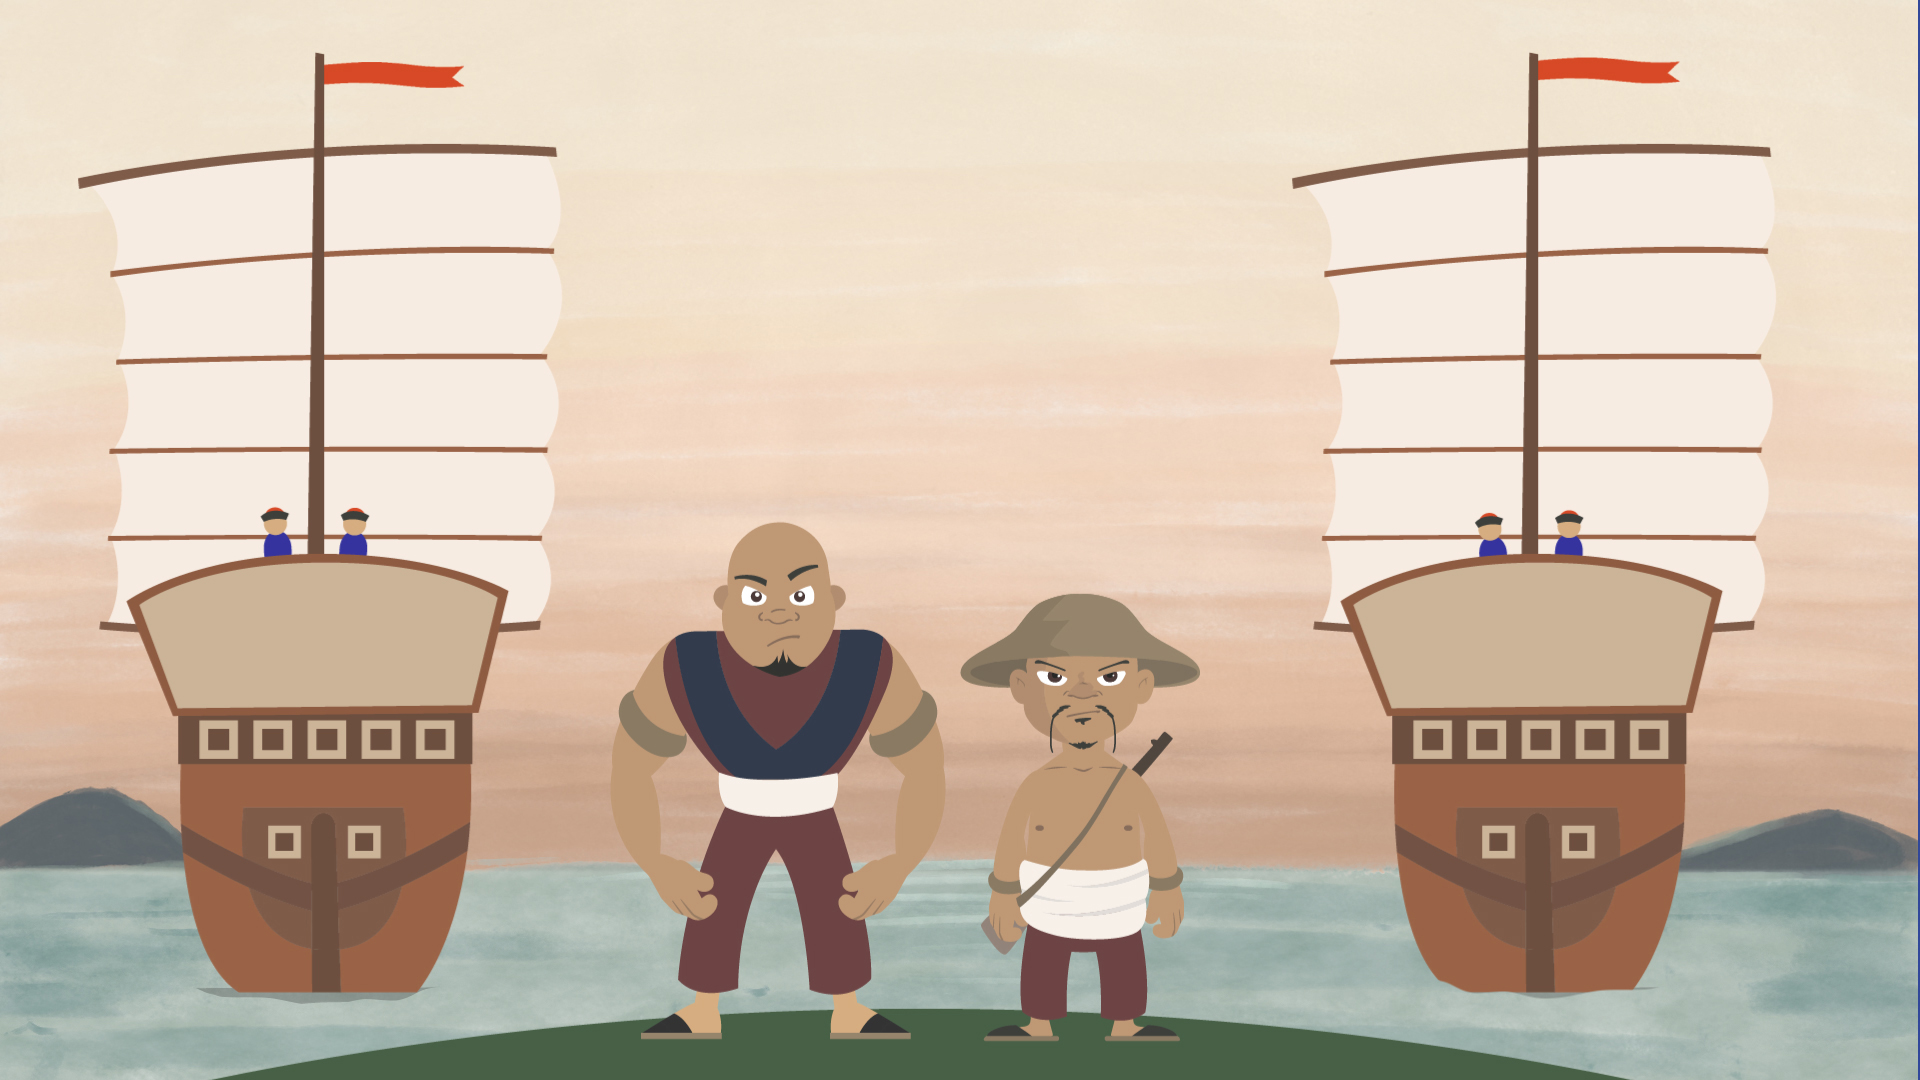 teded-most-successful-pirate-ships-vietnam.jpg